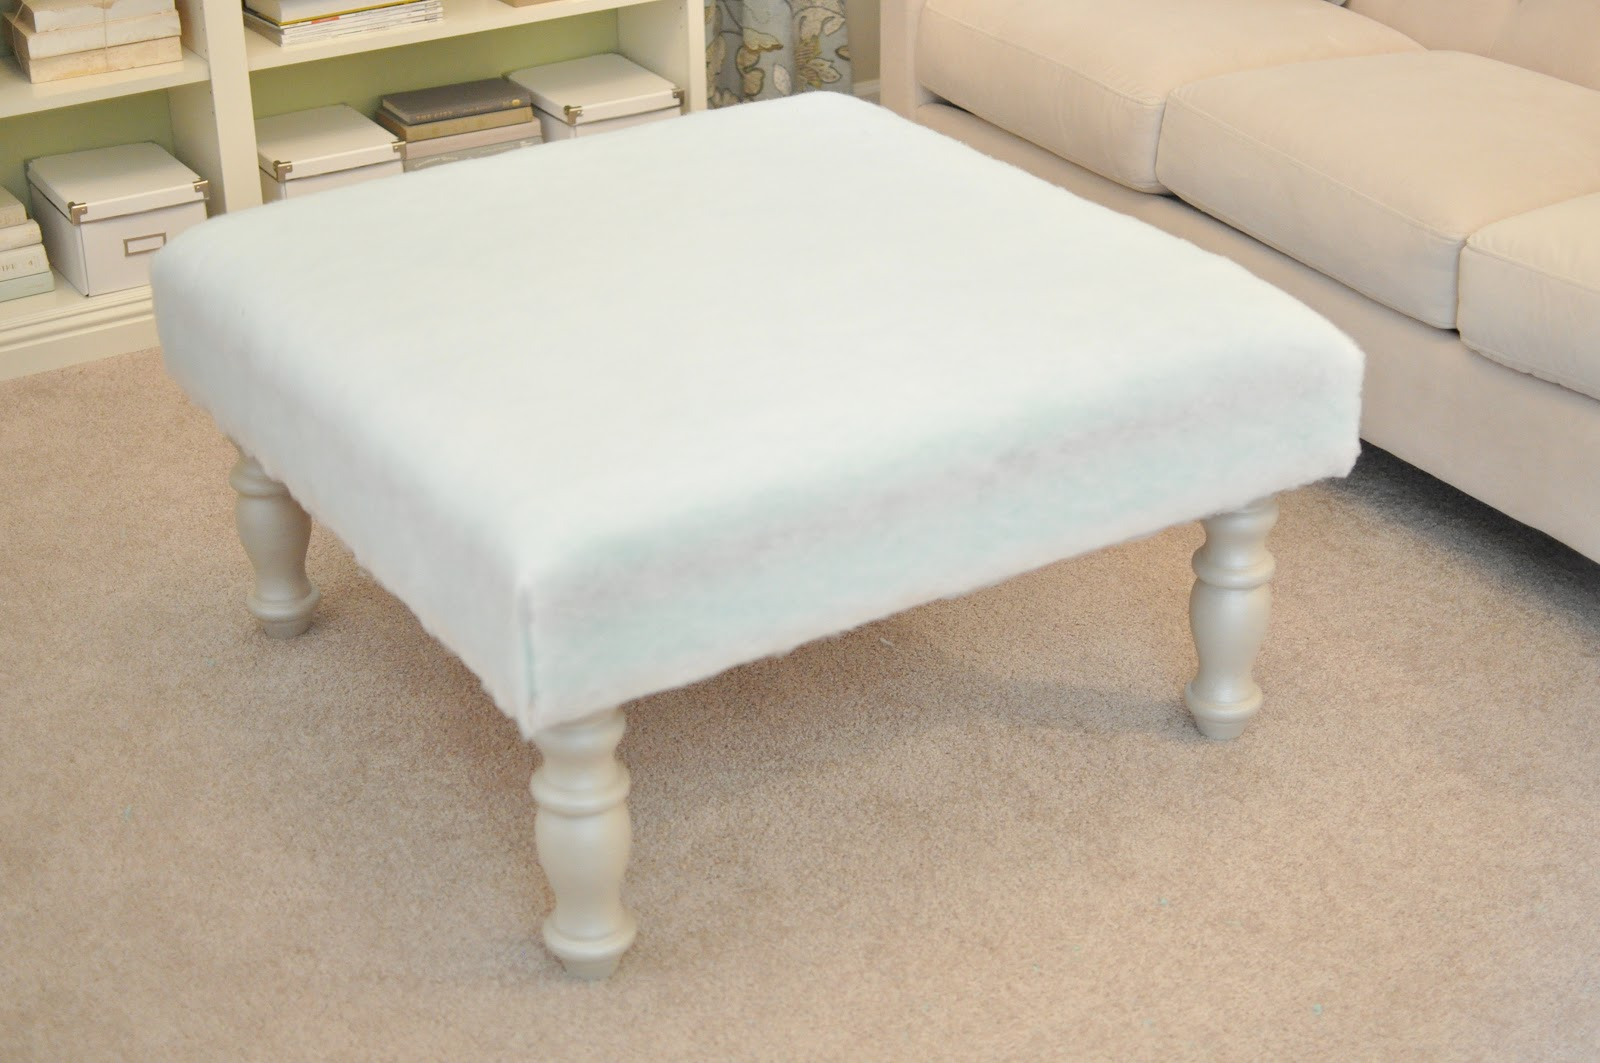 Creative DIY Furniture Hacks : Upholstered Ottoman - The ...